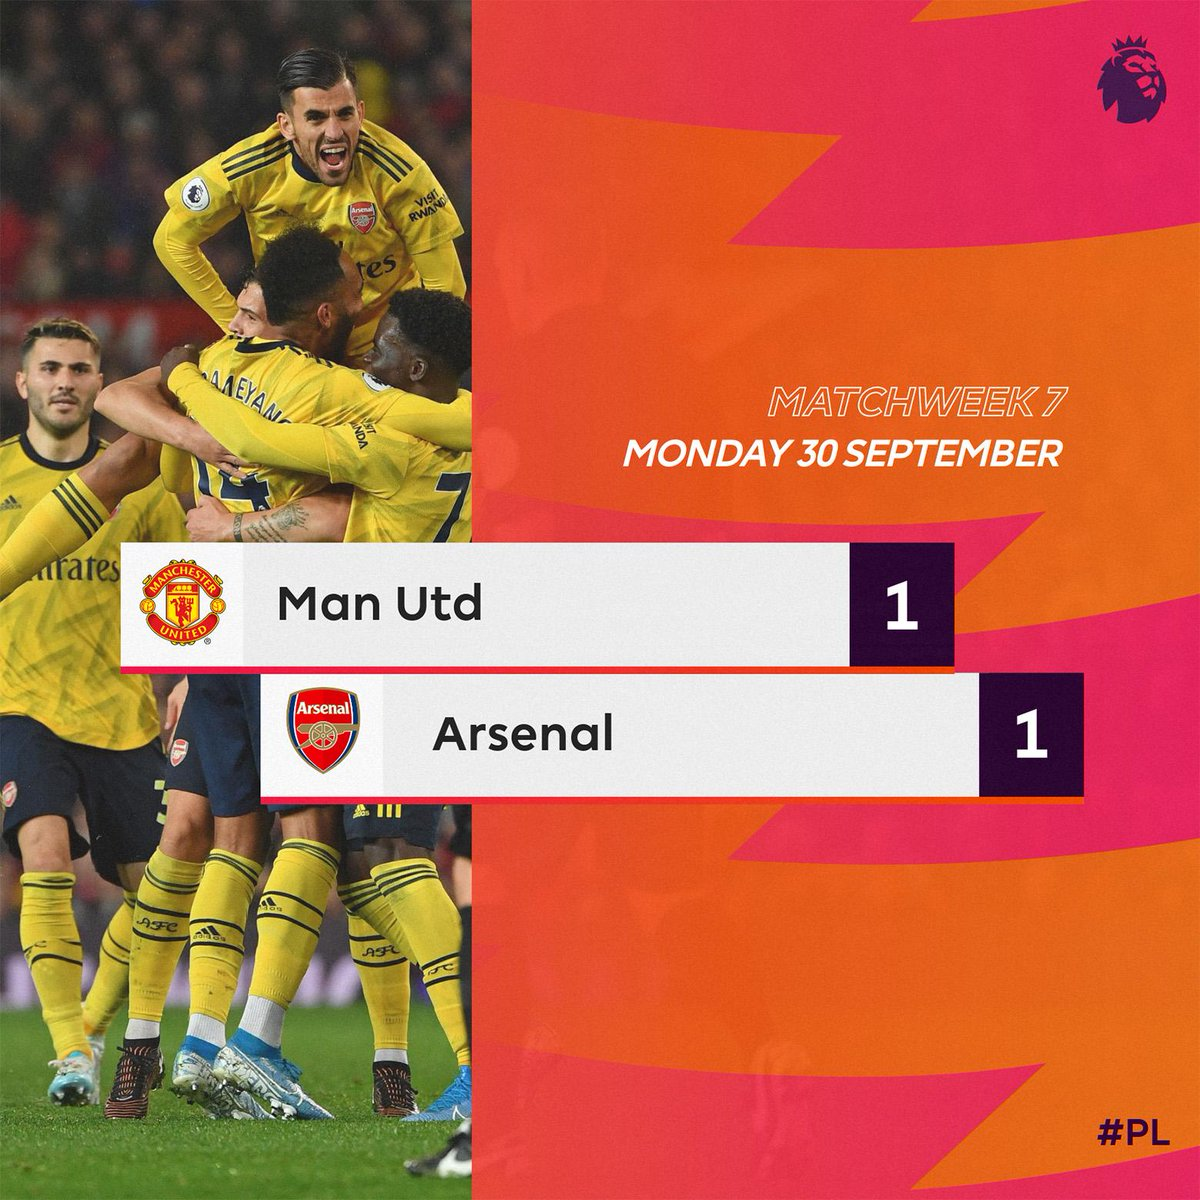 Premier League Monday Night-Pareggio tra United e Arsenal in una partita piacevole